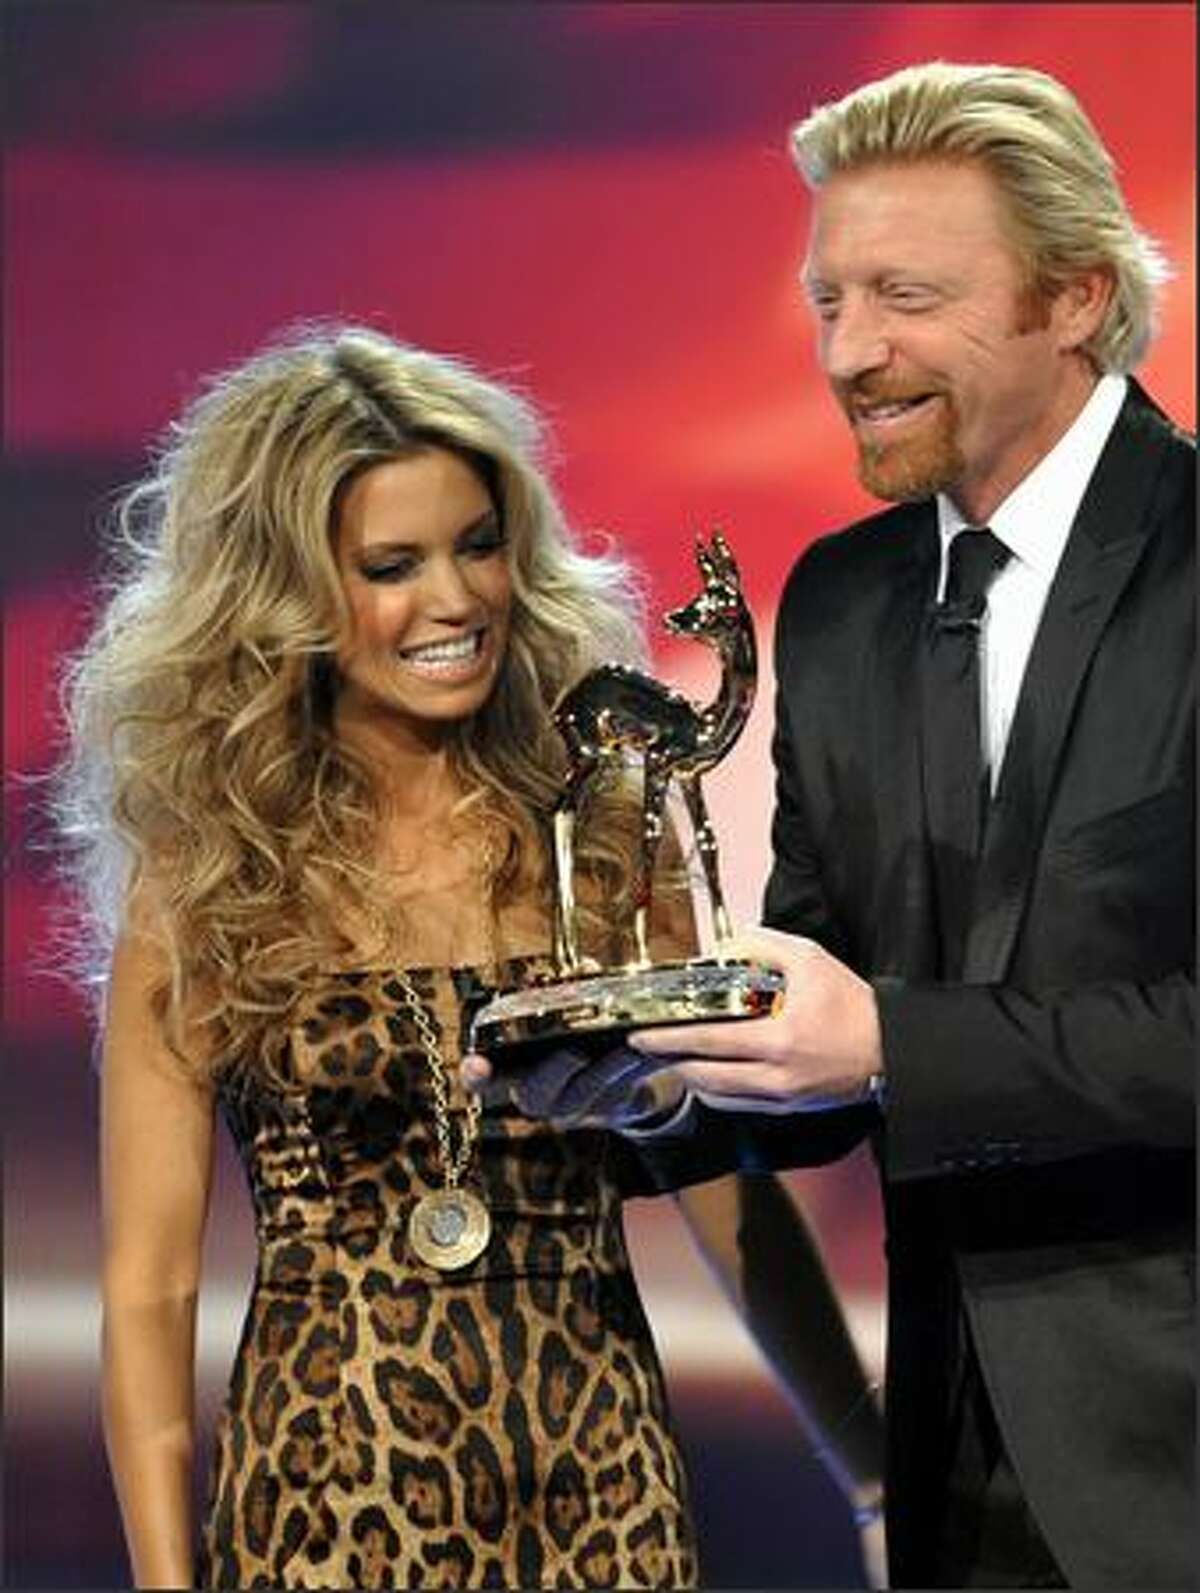 Dutch model Sylvie van der Vaart and former tennis champion German Boris Becker present a Bambi trophy.